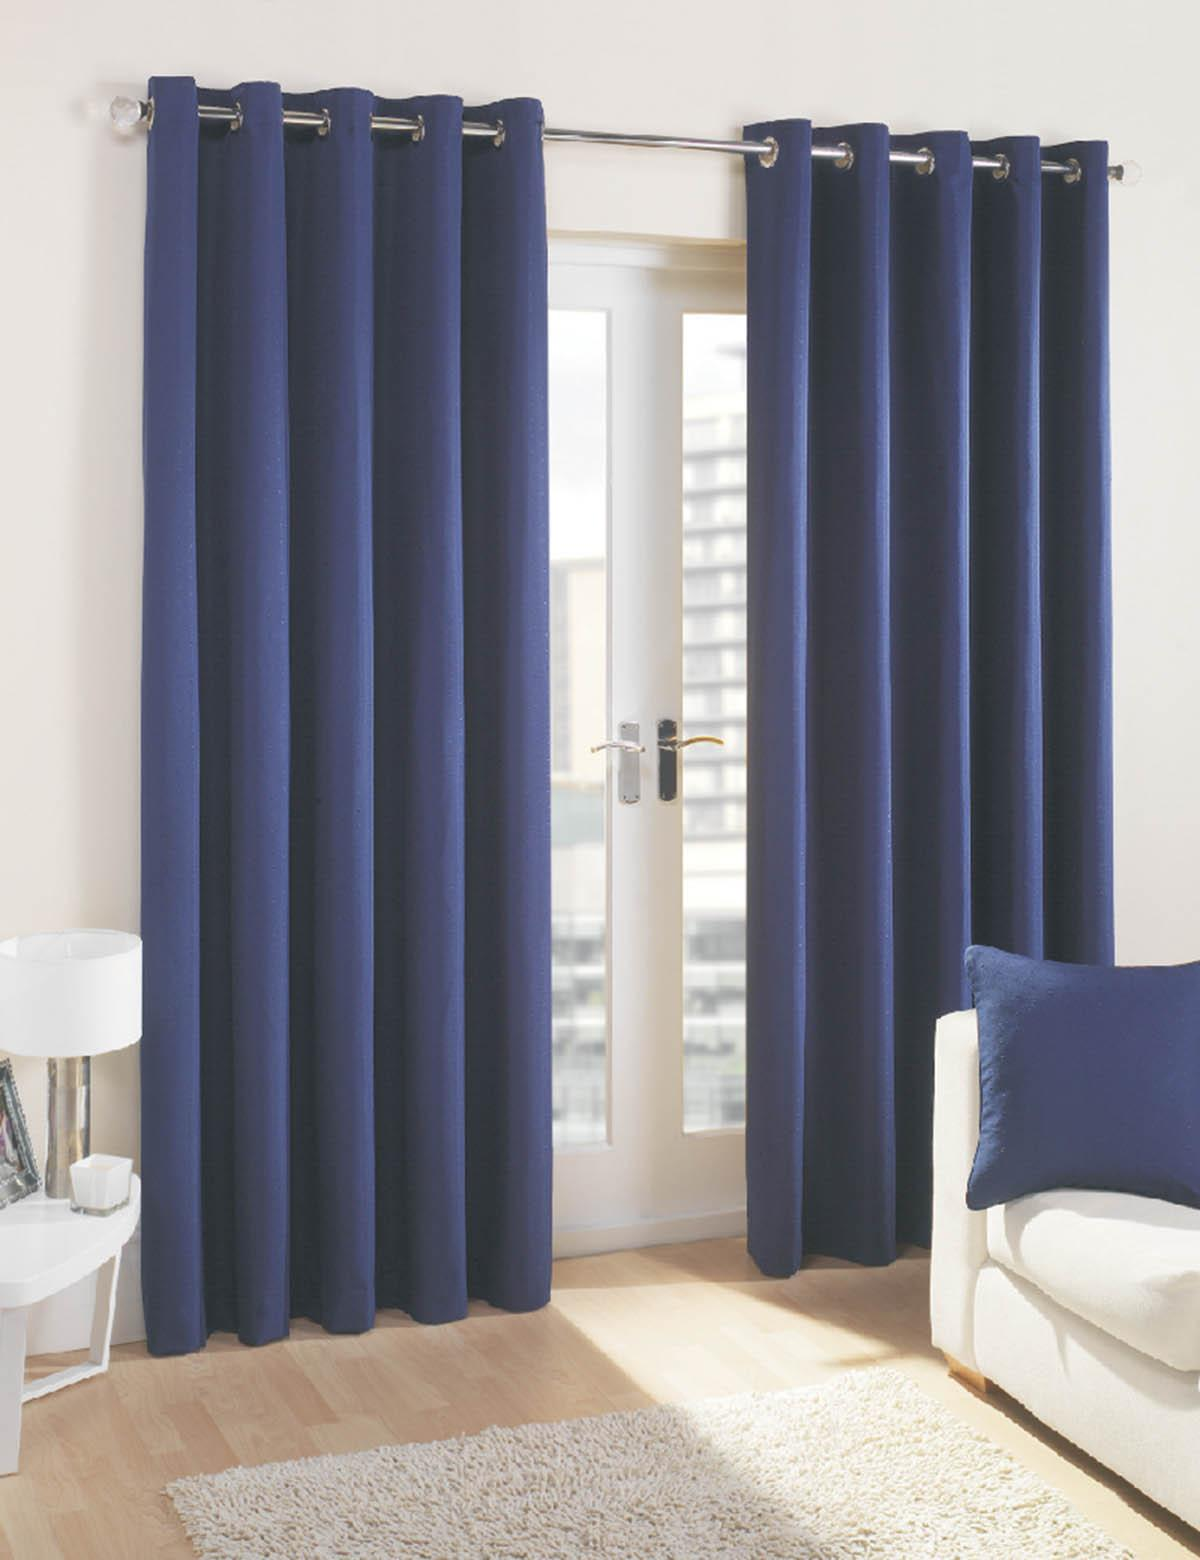 Cheap Curtains Online Navy Curtains Shop For Cheap Curtains And Blinds And Save